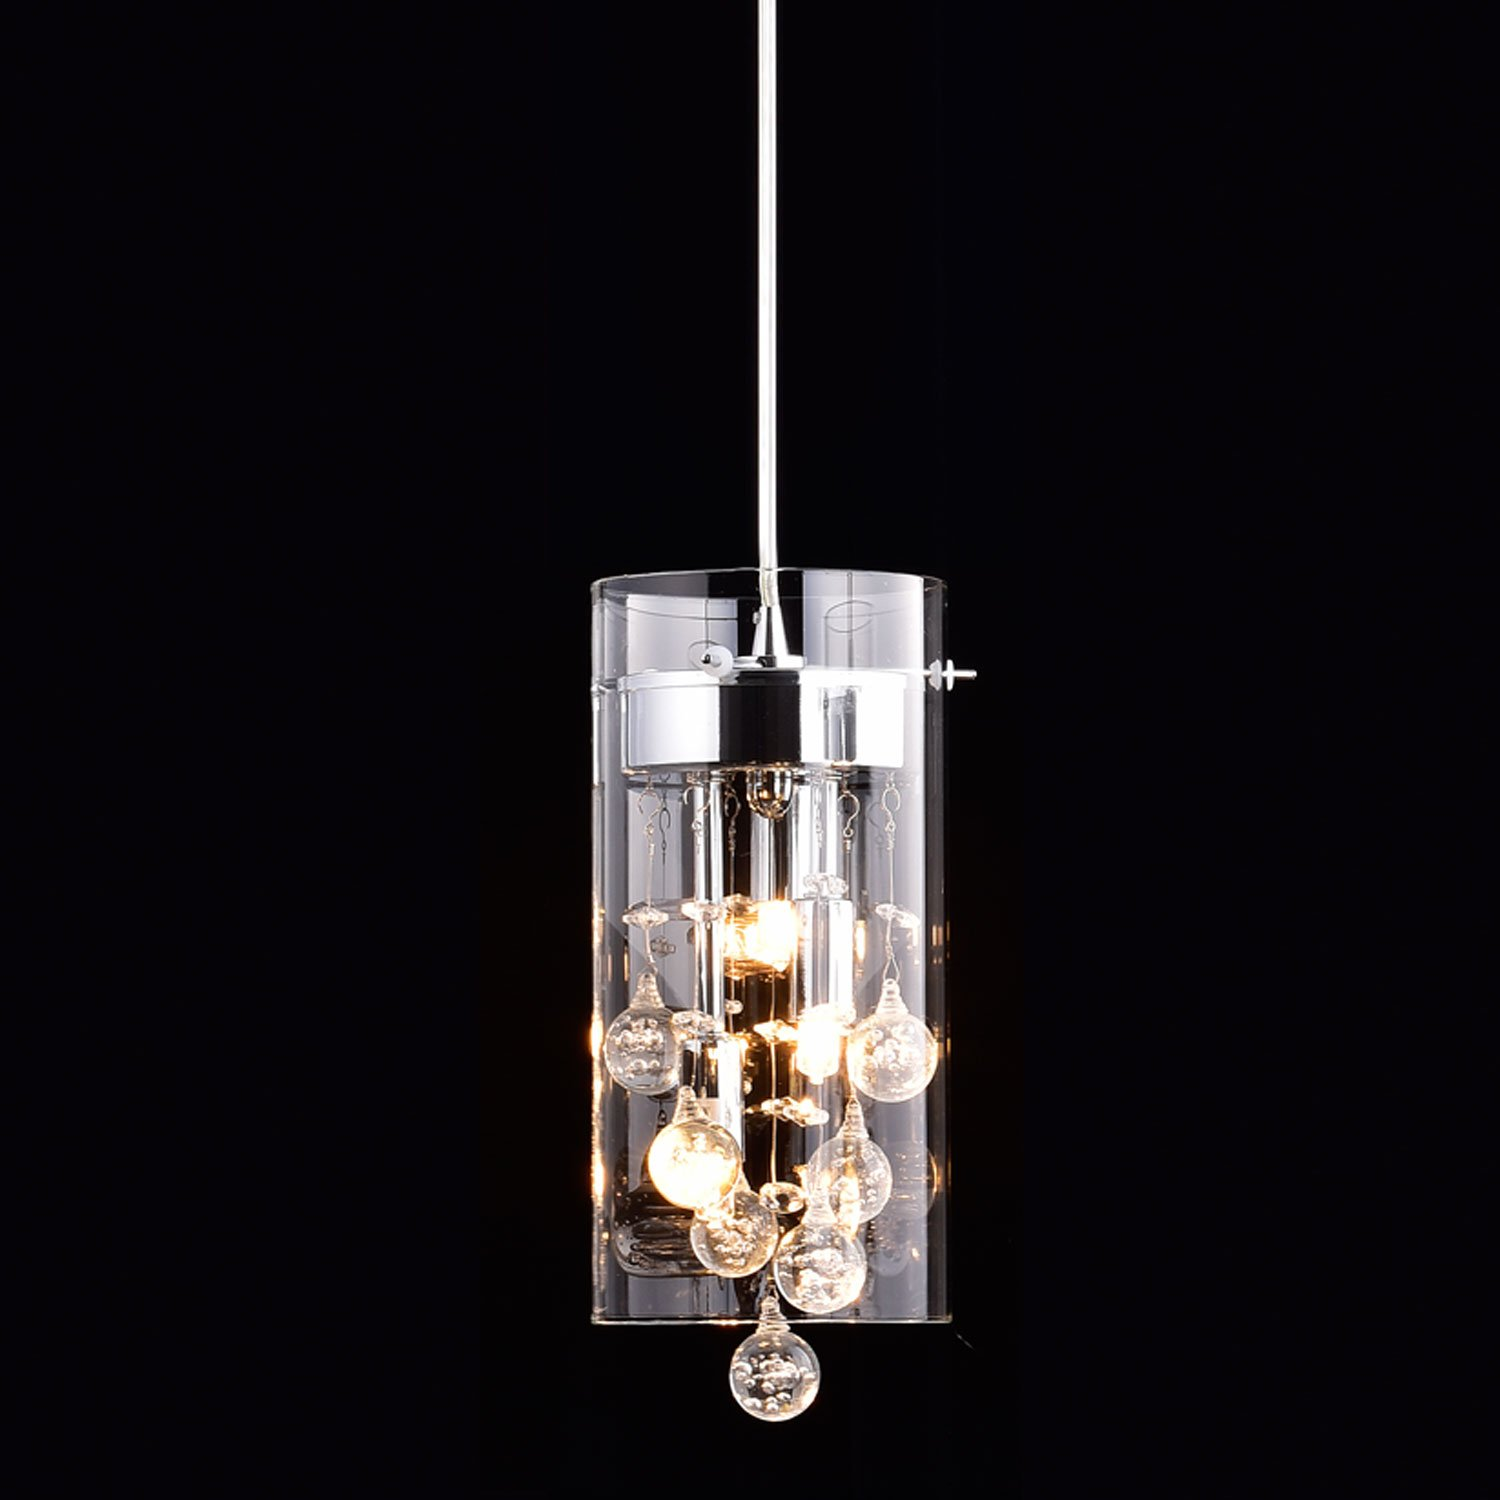 Claxy ecopower lighting glass crystal pendant lighting modern claxy ecopower lighting glass crystal pendant lighting modern chandelier for kitchen amazon arubaitofo Images